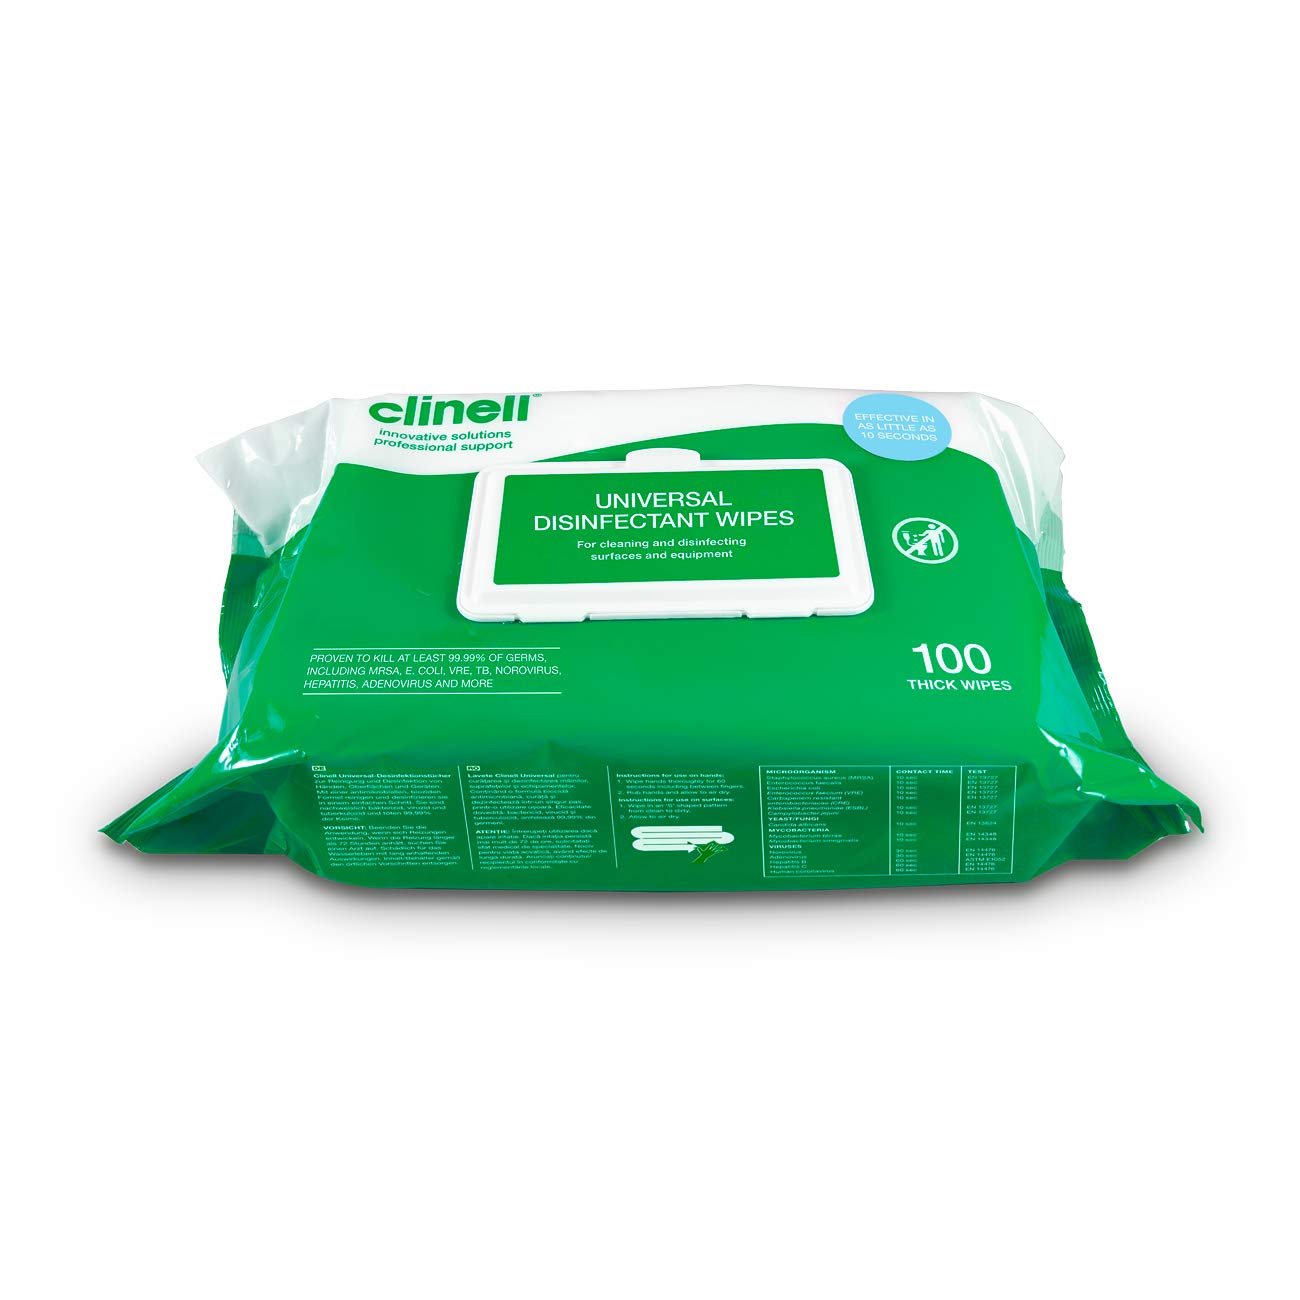 Clinell - Antibacterial Hand Wipes, 100 each pack of 6